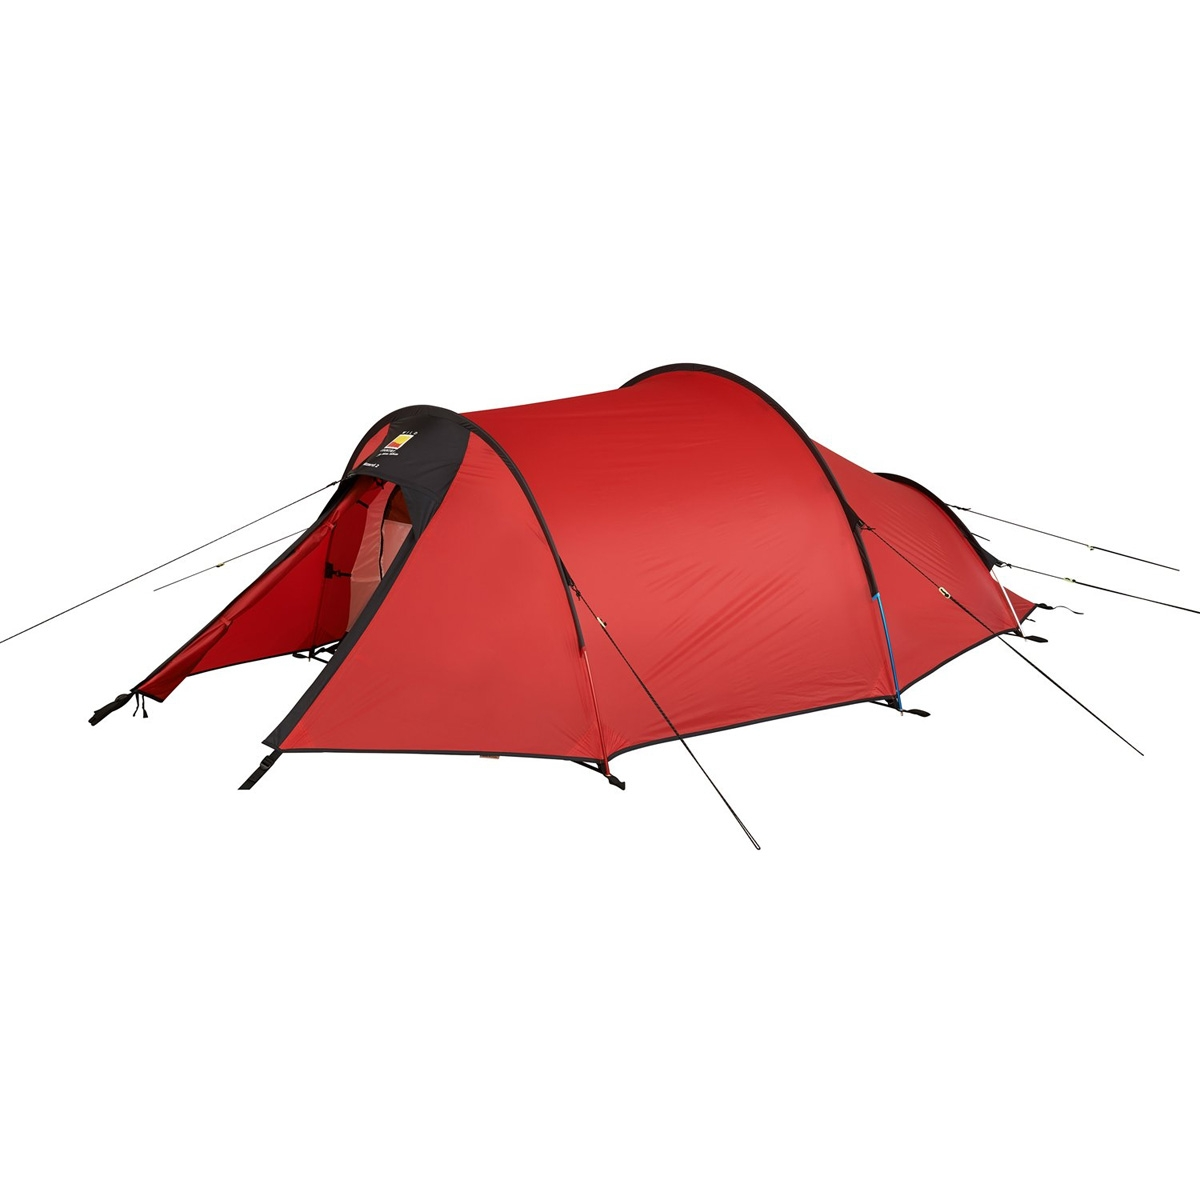 Wild Country Blizzard 2 Tent  sc 1 st  Uttings & Wild Country Tents | Uttings.co.uk